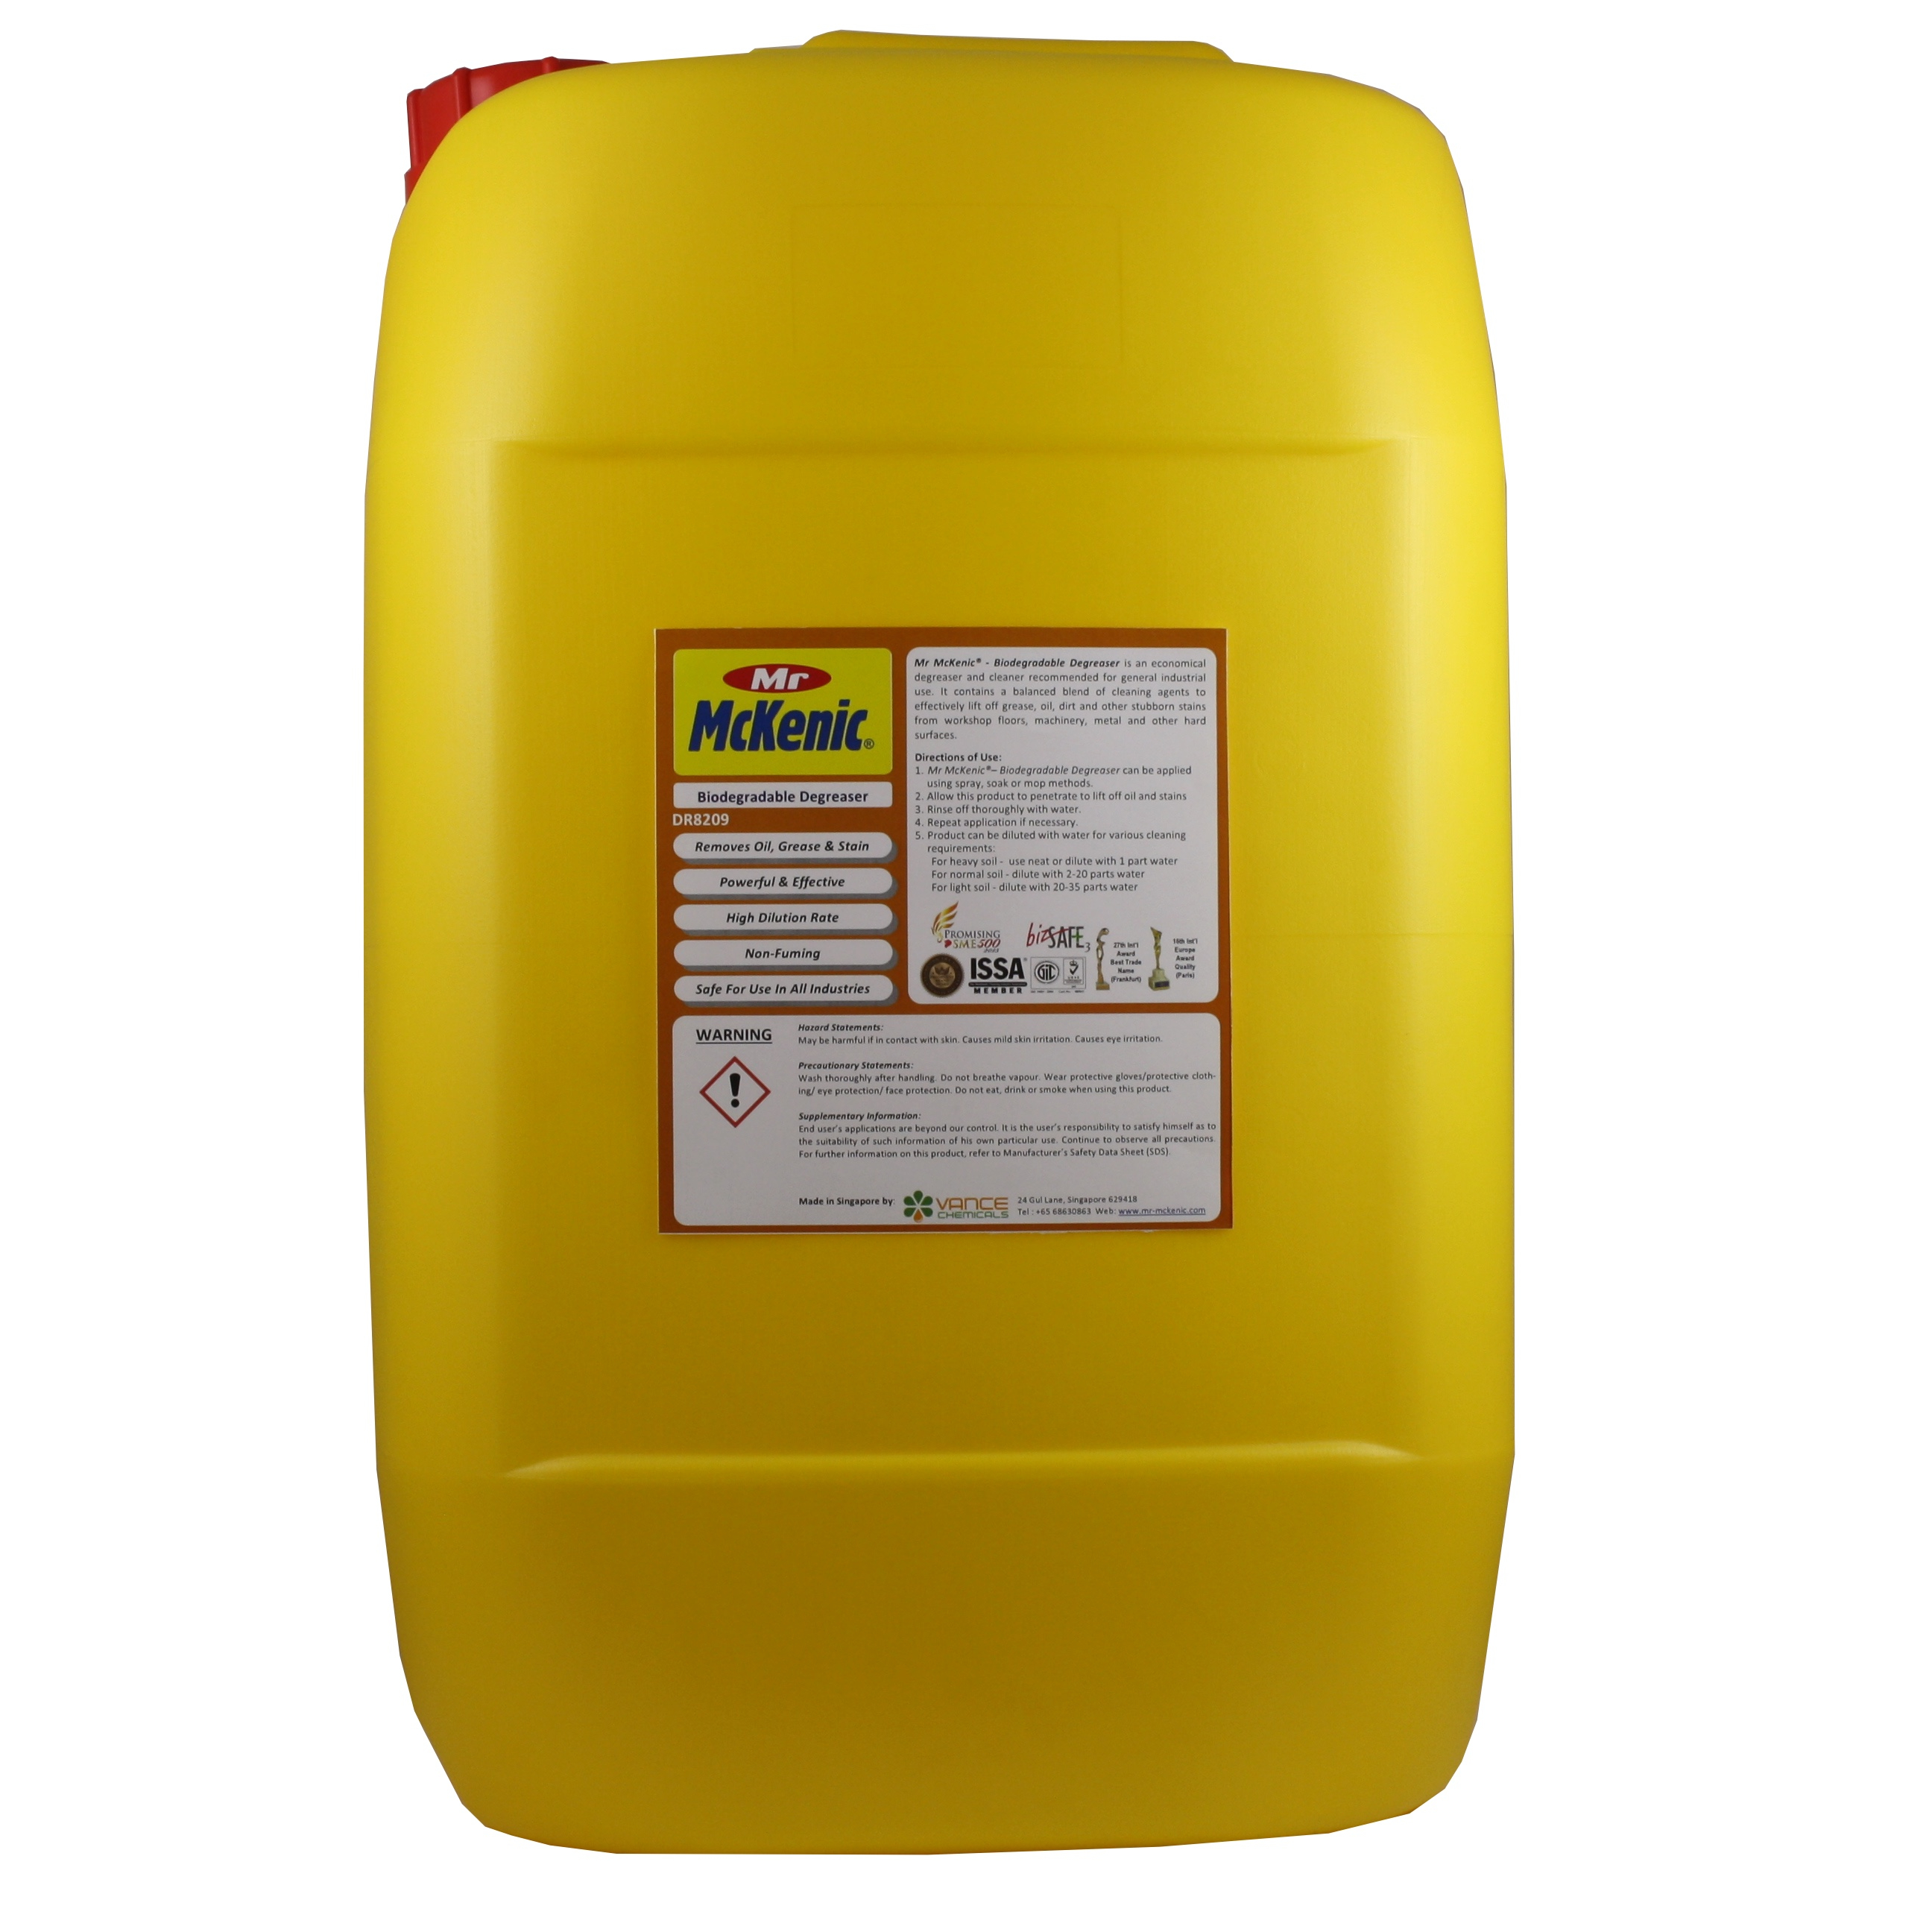 Degreaser,Tank Cleaner - Buy Degreaser Cleaner Product on Alibaba com